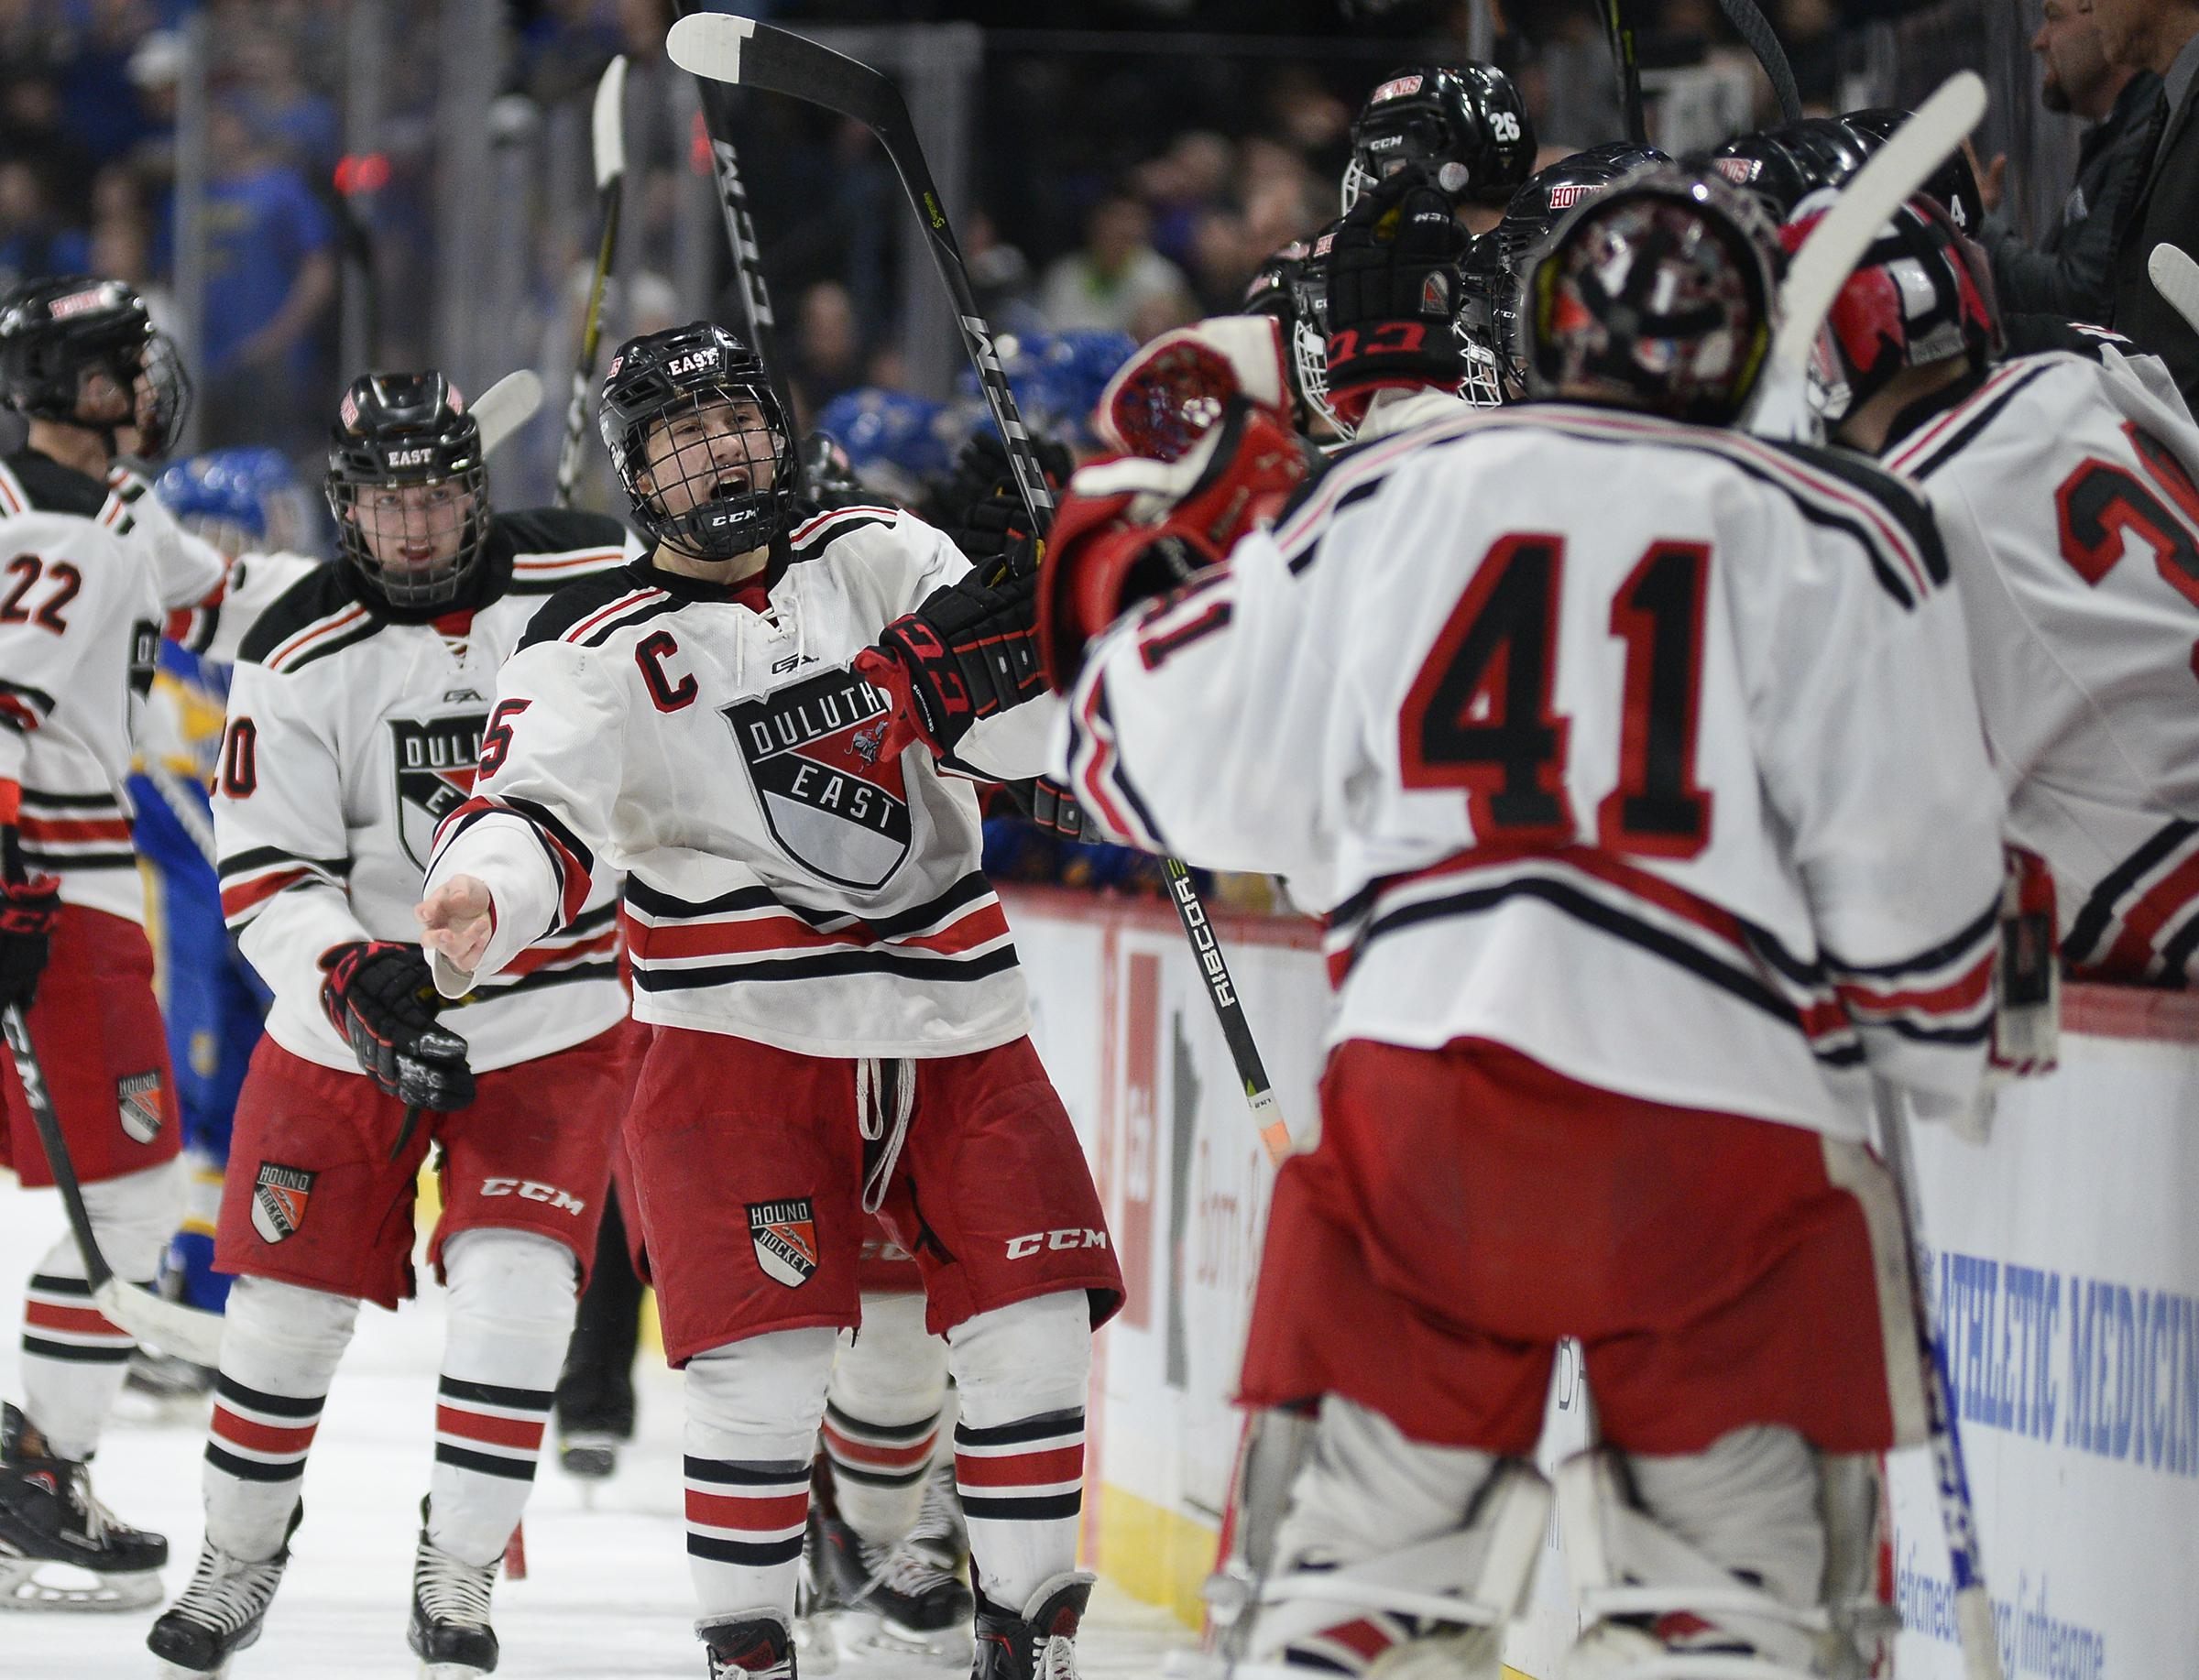 MN H.S.: Worth His Weight In Goals